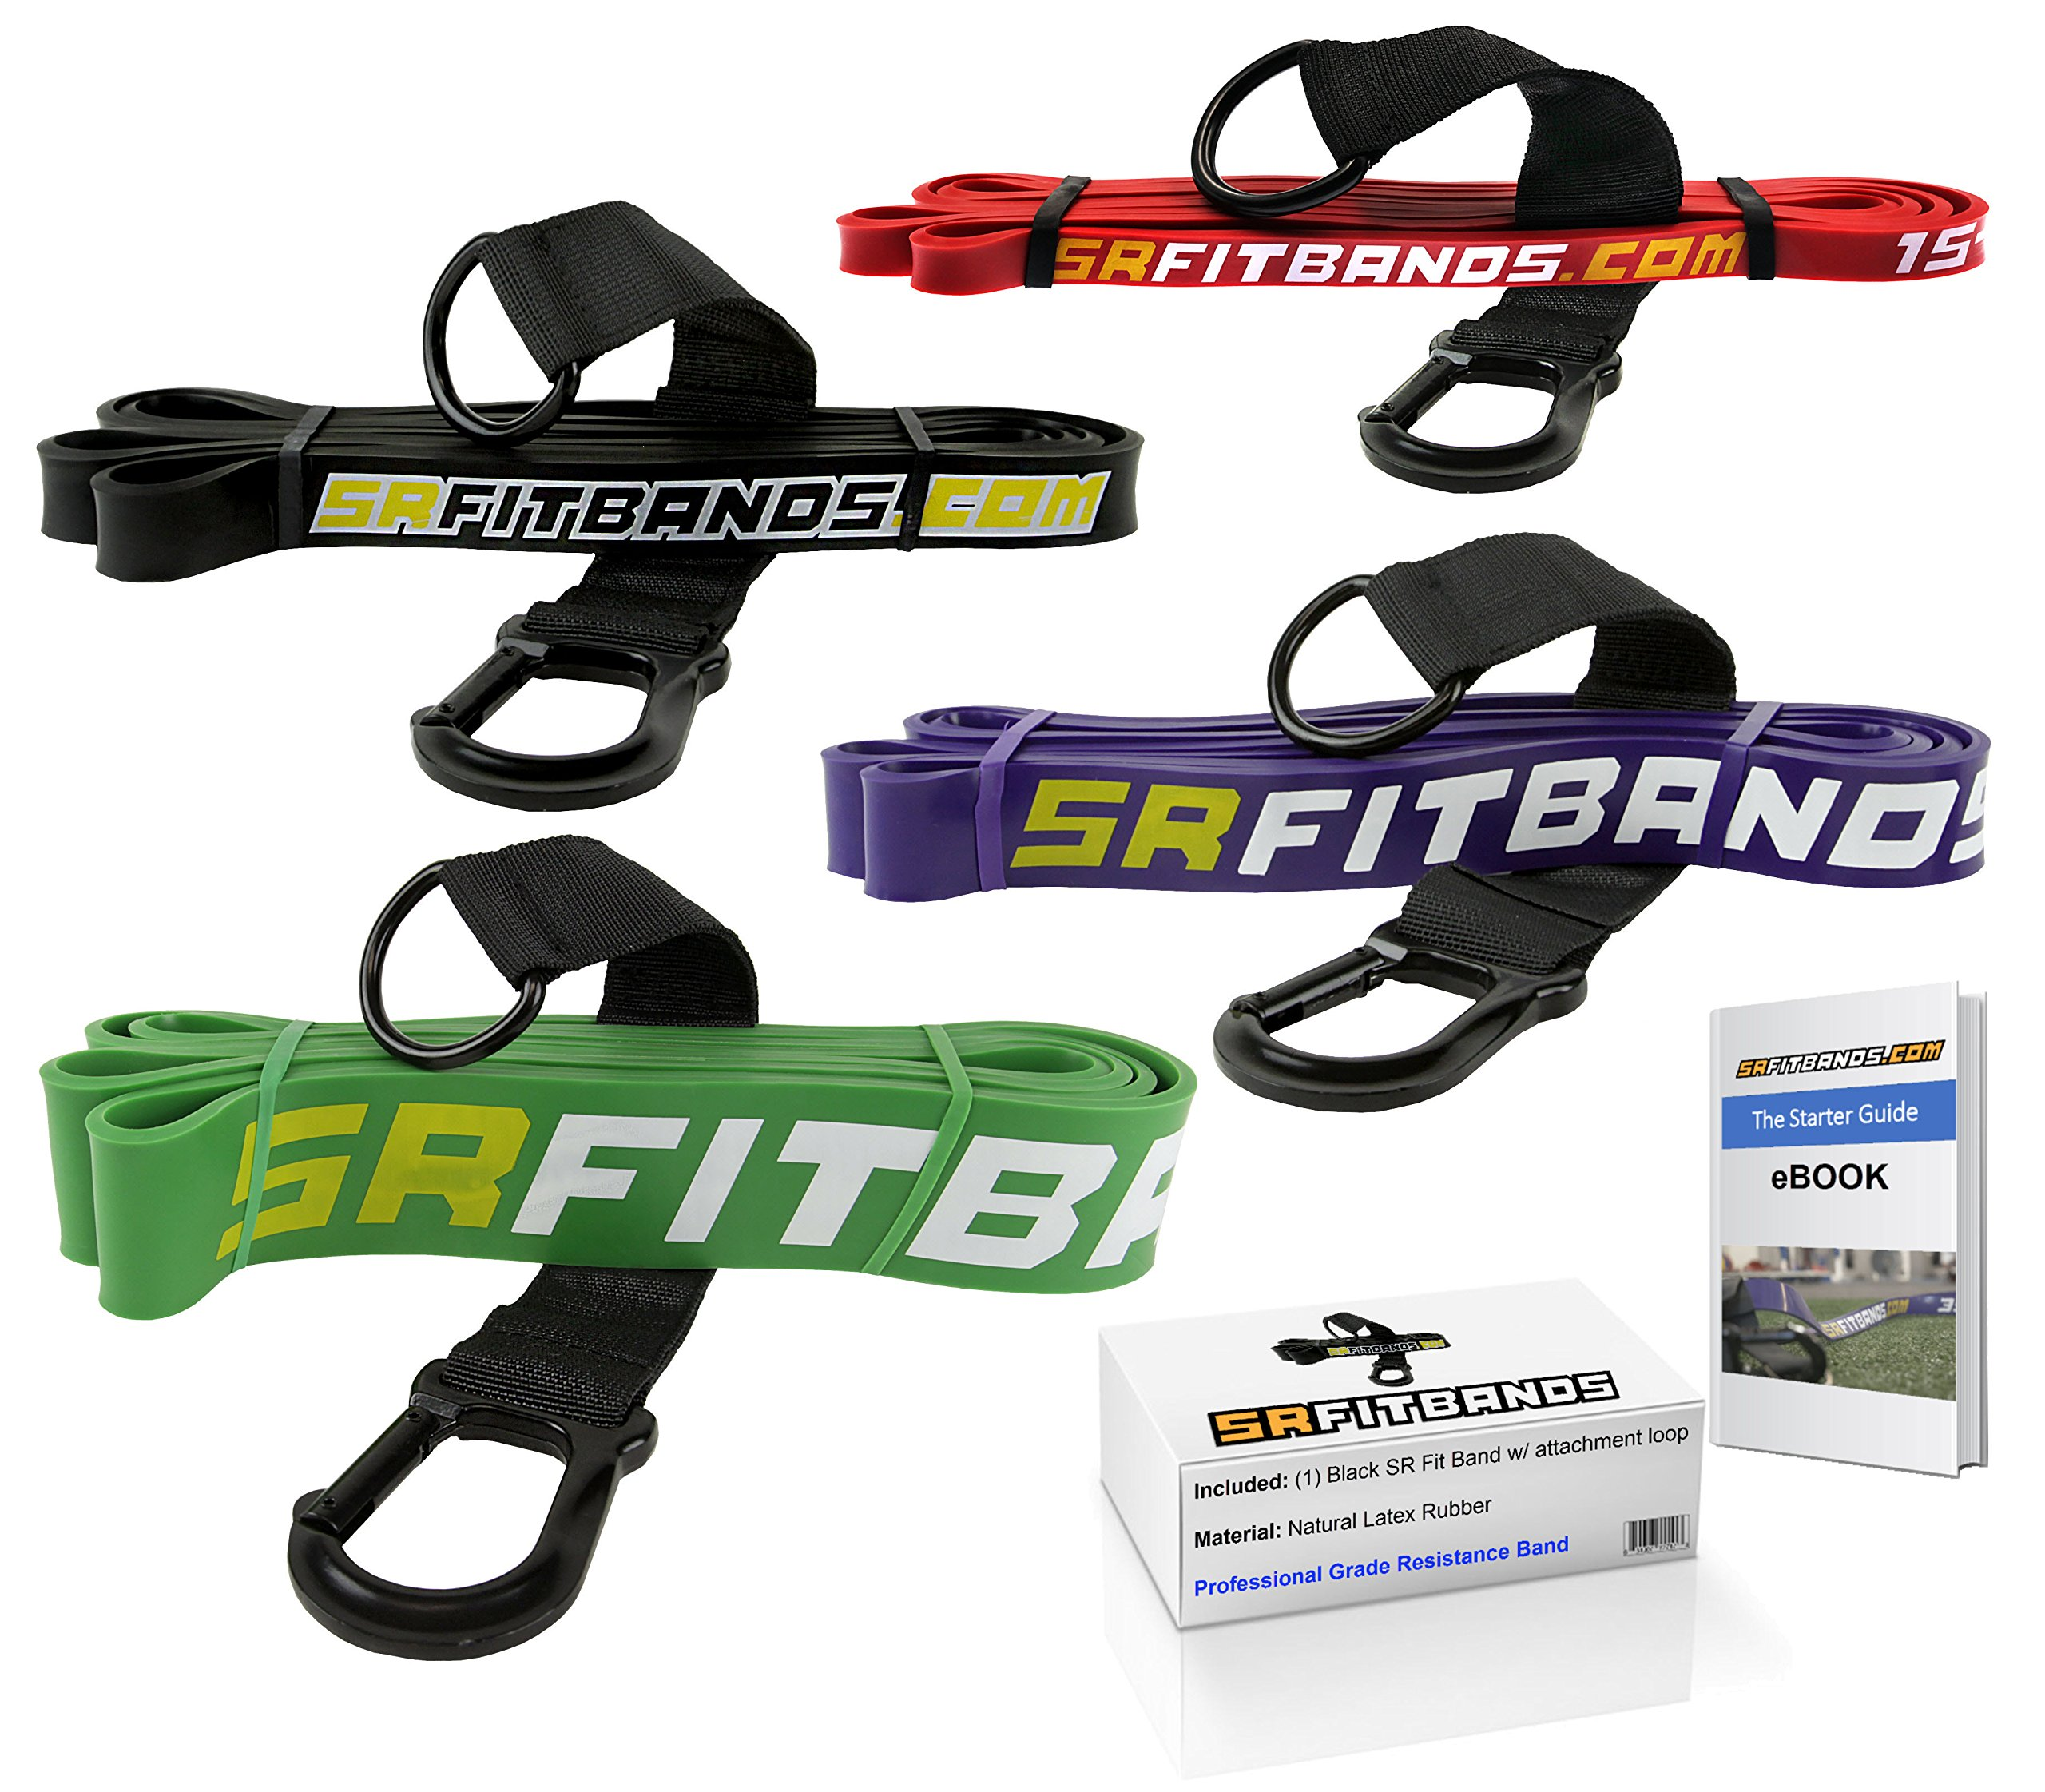 Resistance Band   Exercise Band   Fitness band: featuring the SR fit band attachment loop   Single Resistance Band - 41'' loop (Black   25-65 lbs)